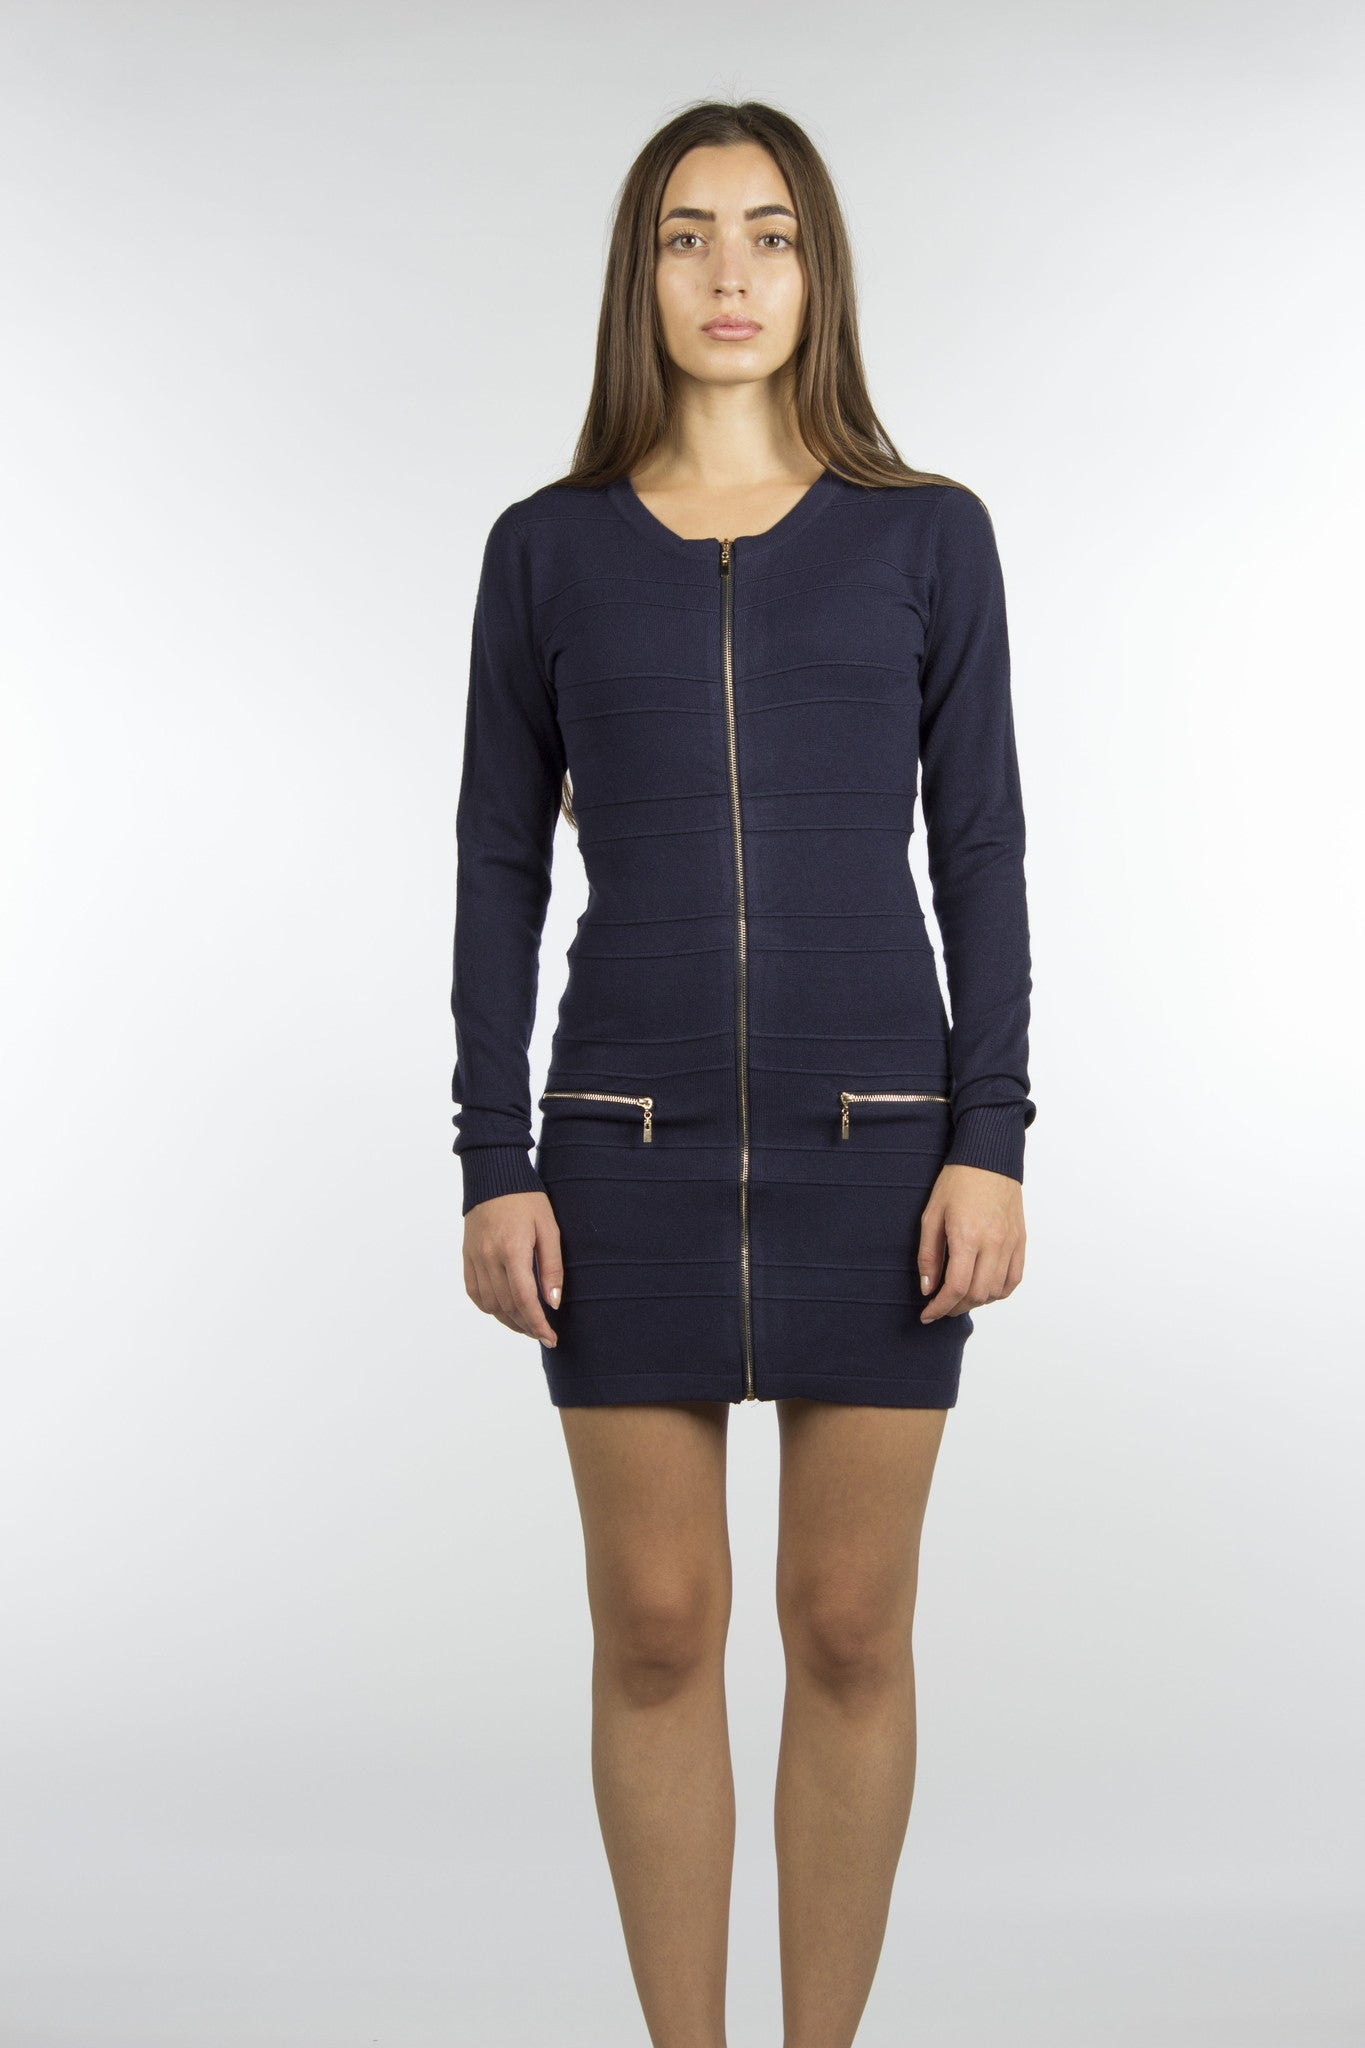 navy dress with front pockets and gold zippers